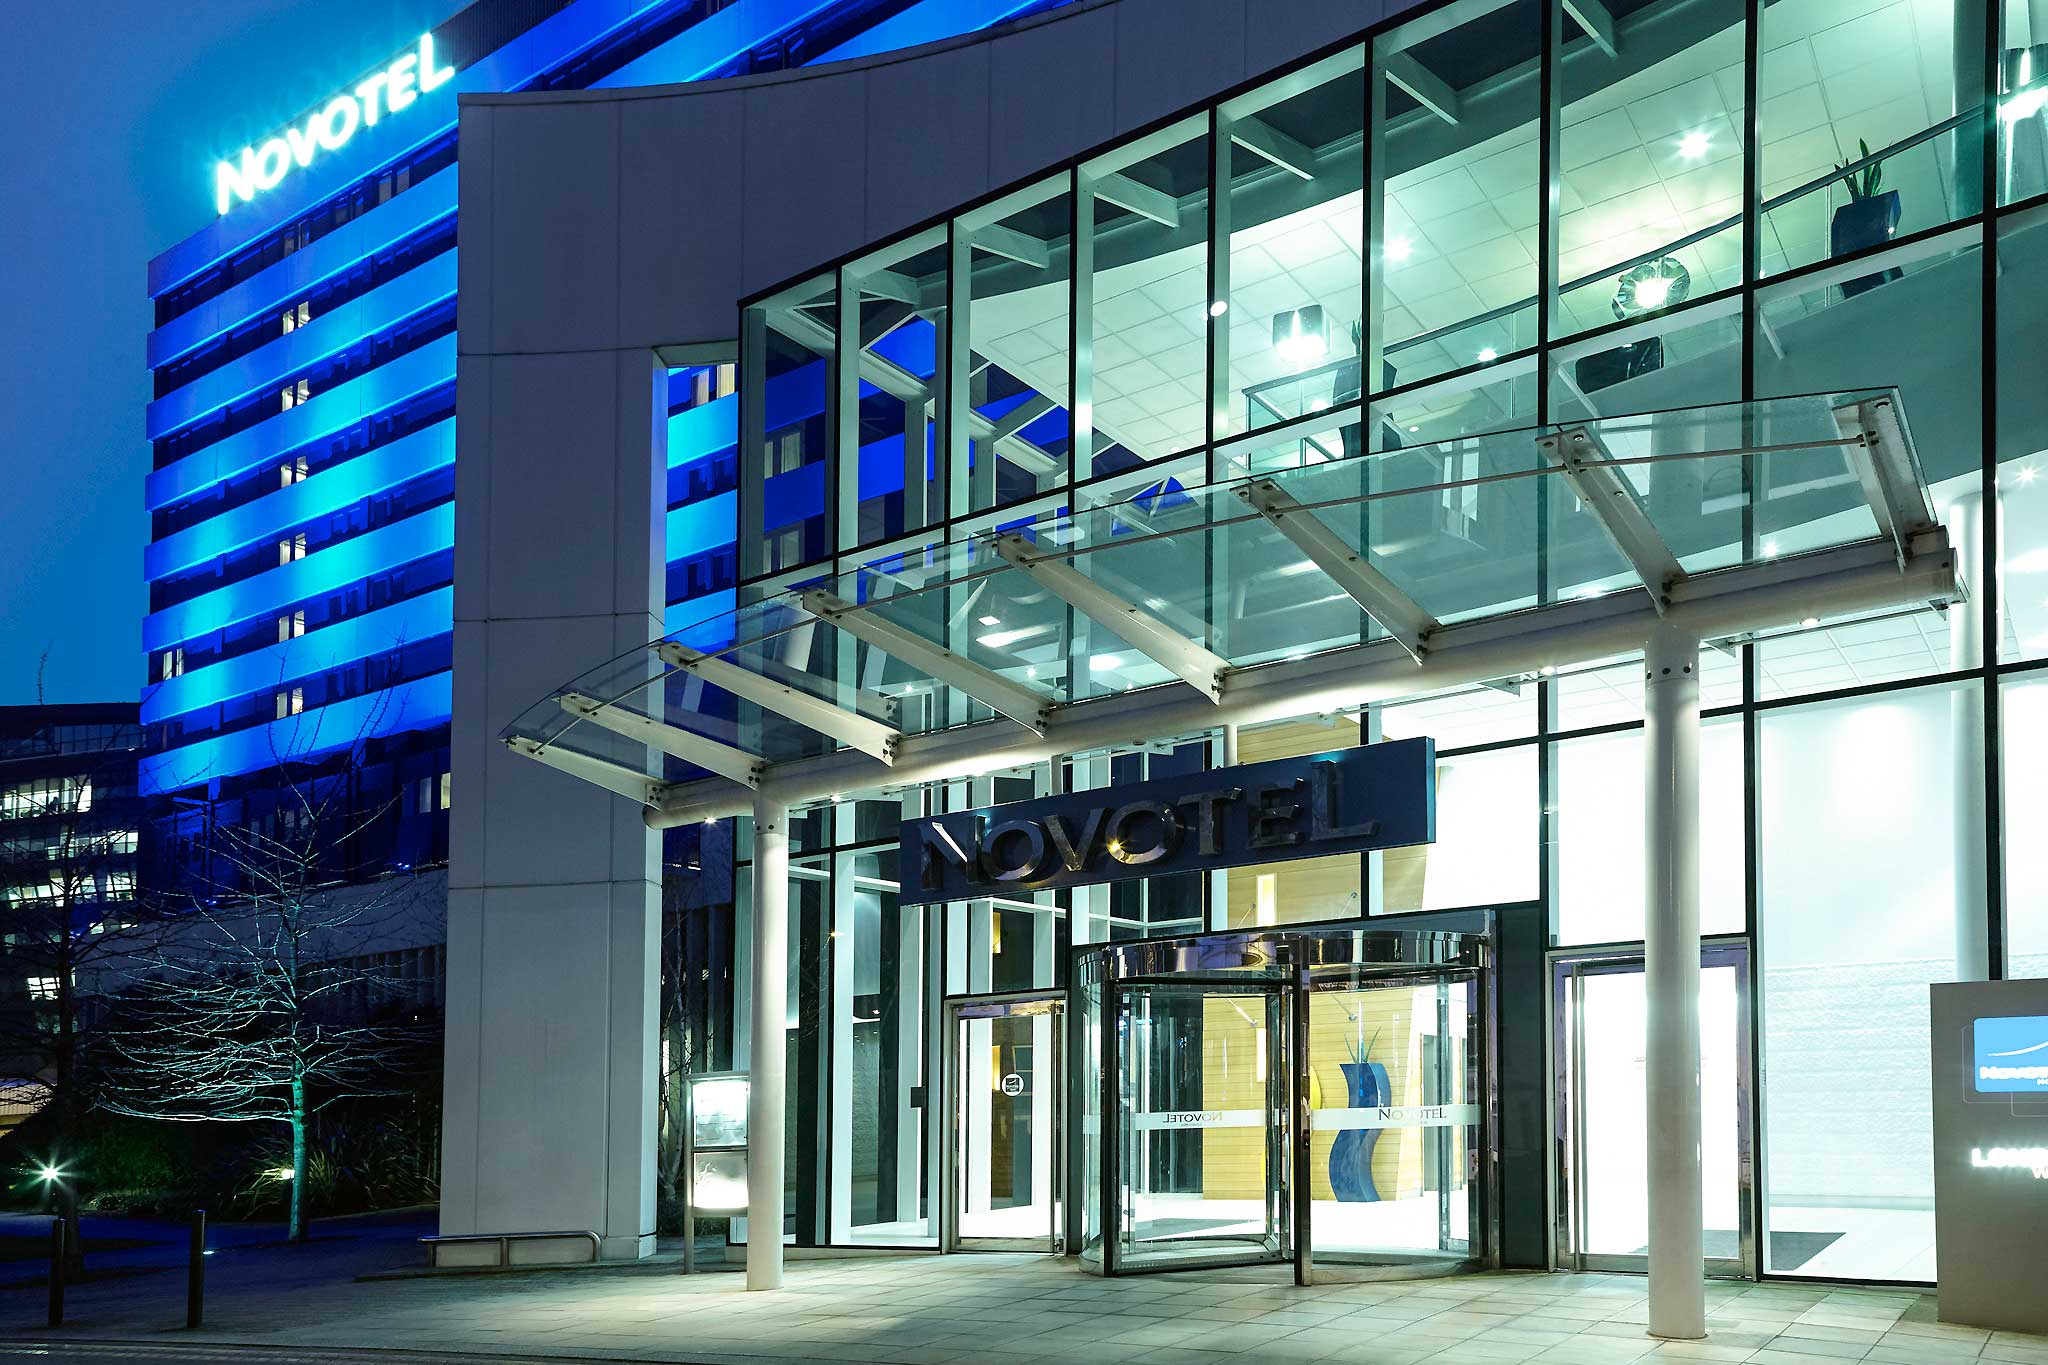 Hotell – Novotel London West